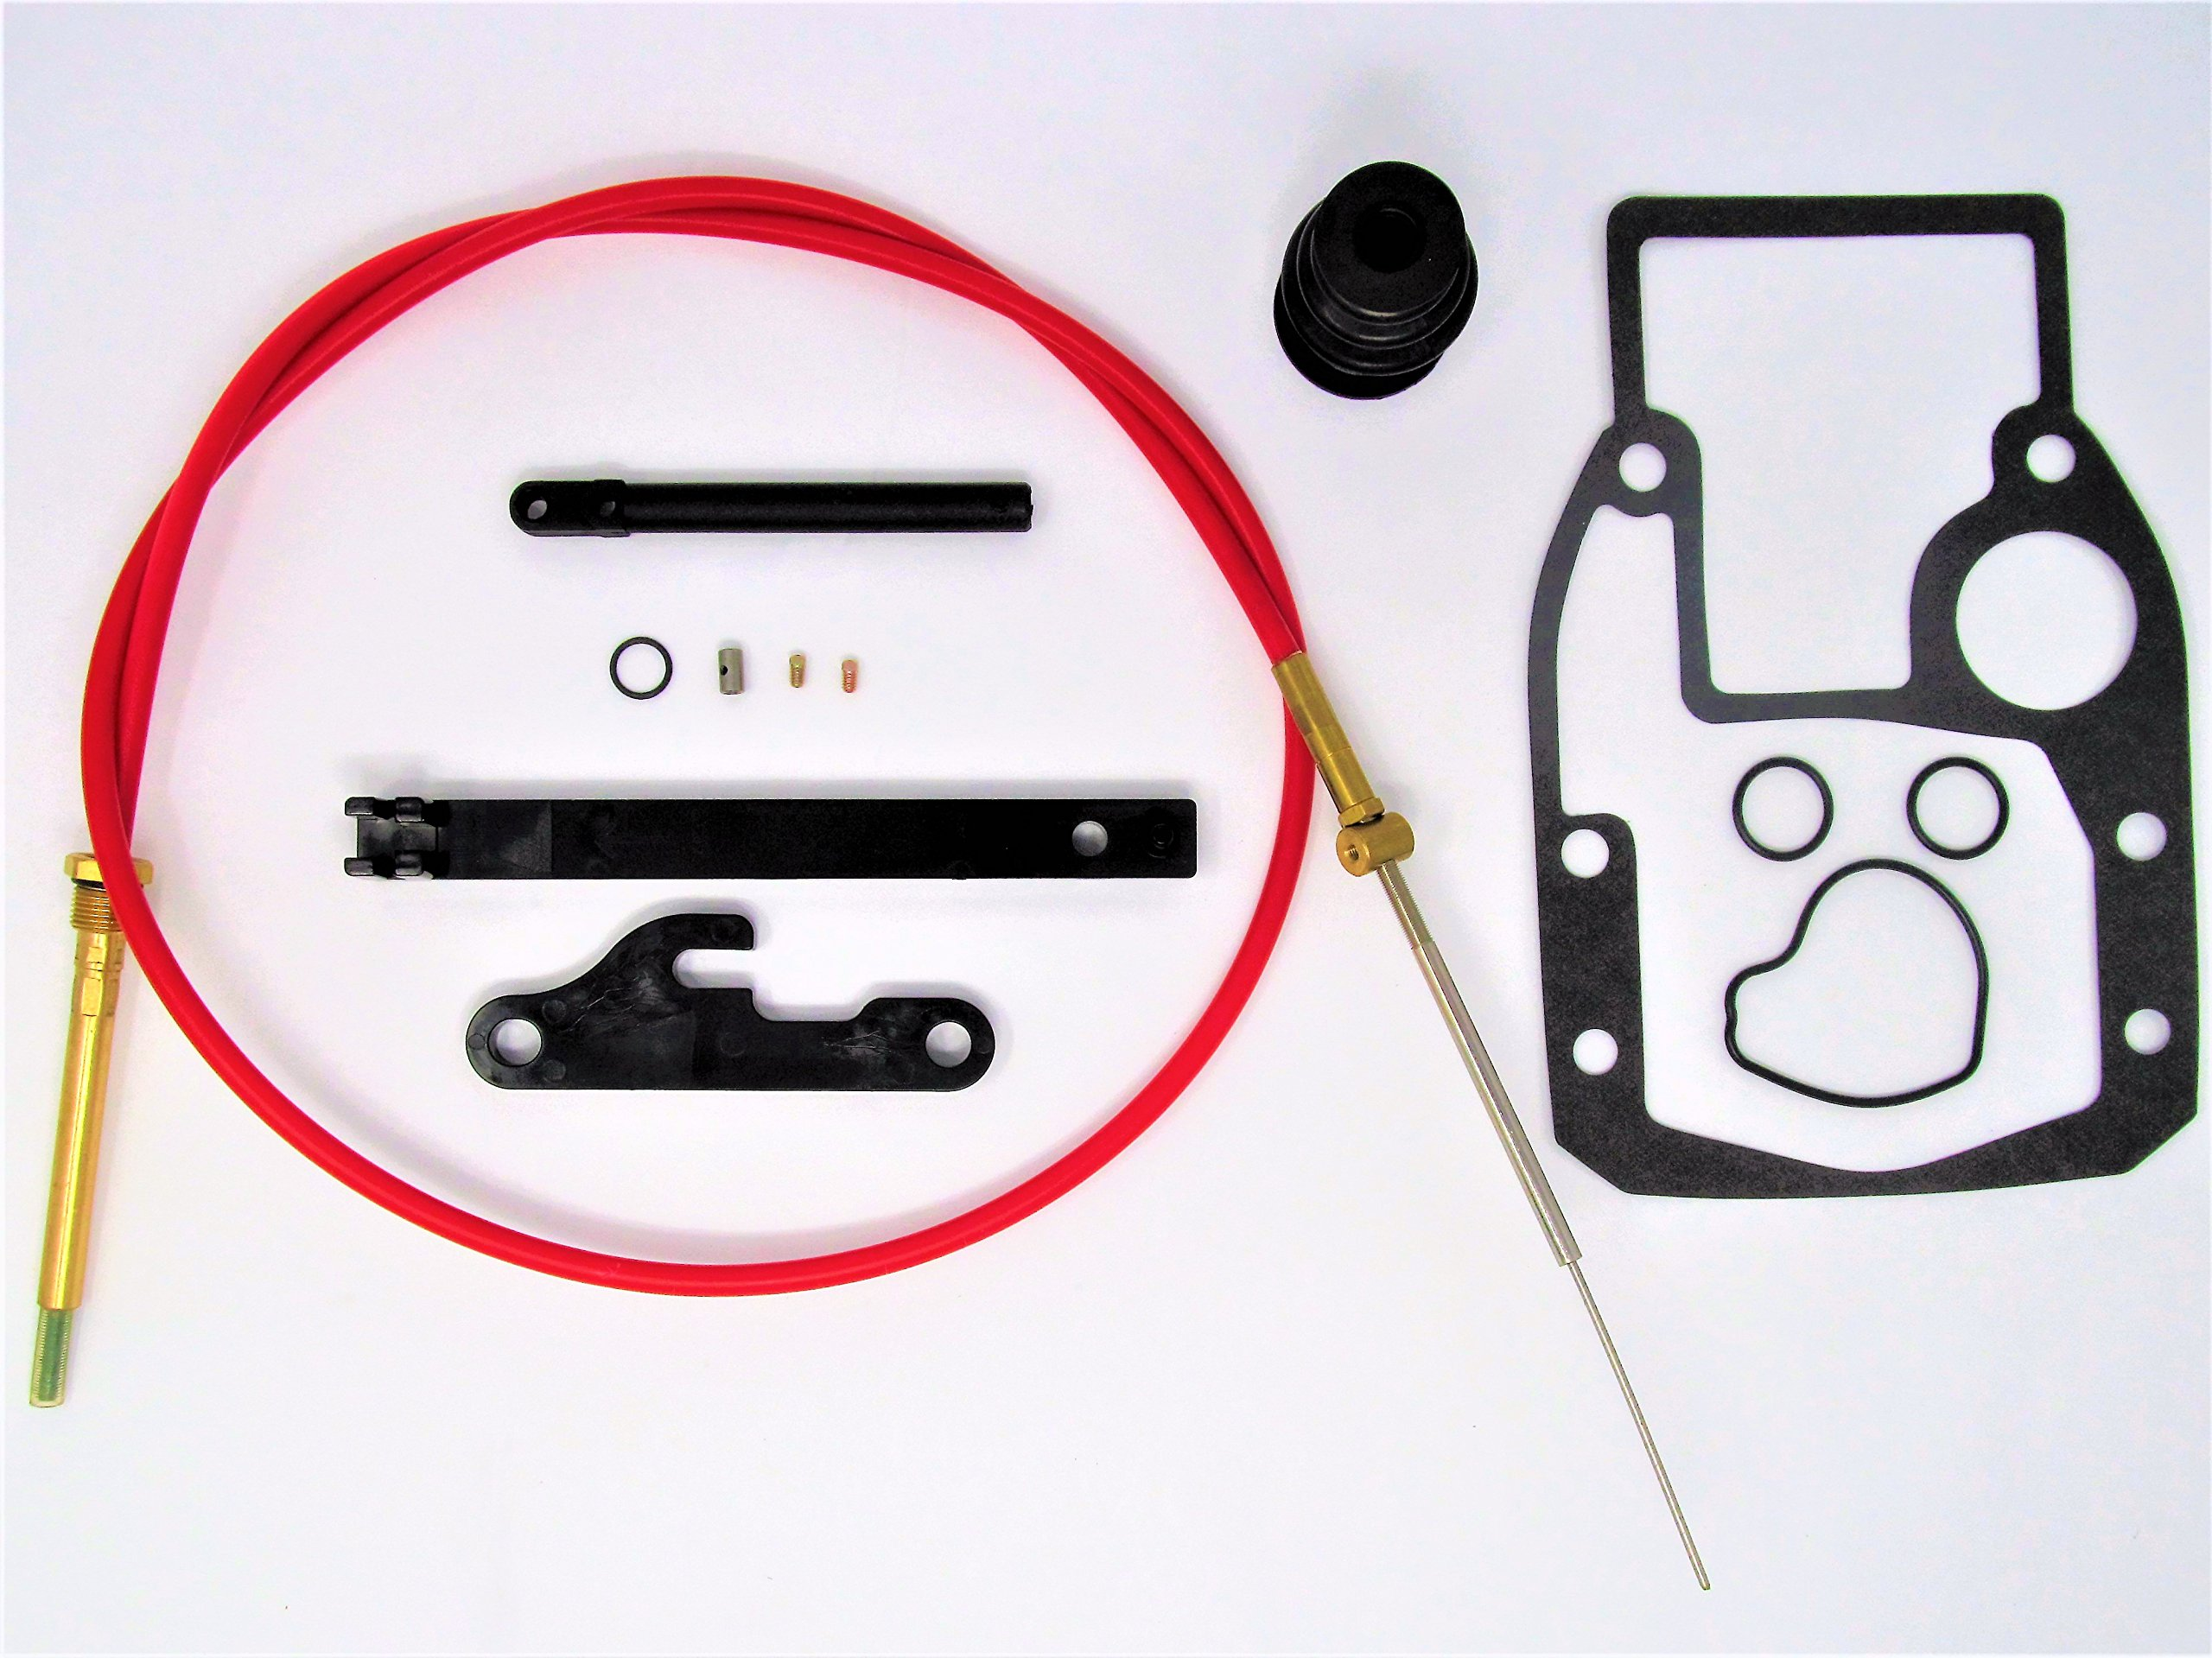 Marine Parts House Complete OMC Cobra Shift Cable Repair Kit w/Tool 21455 39630 987661 508105 21715